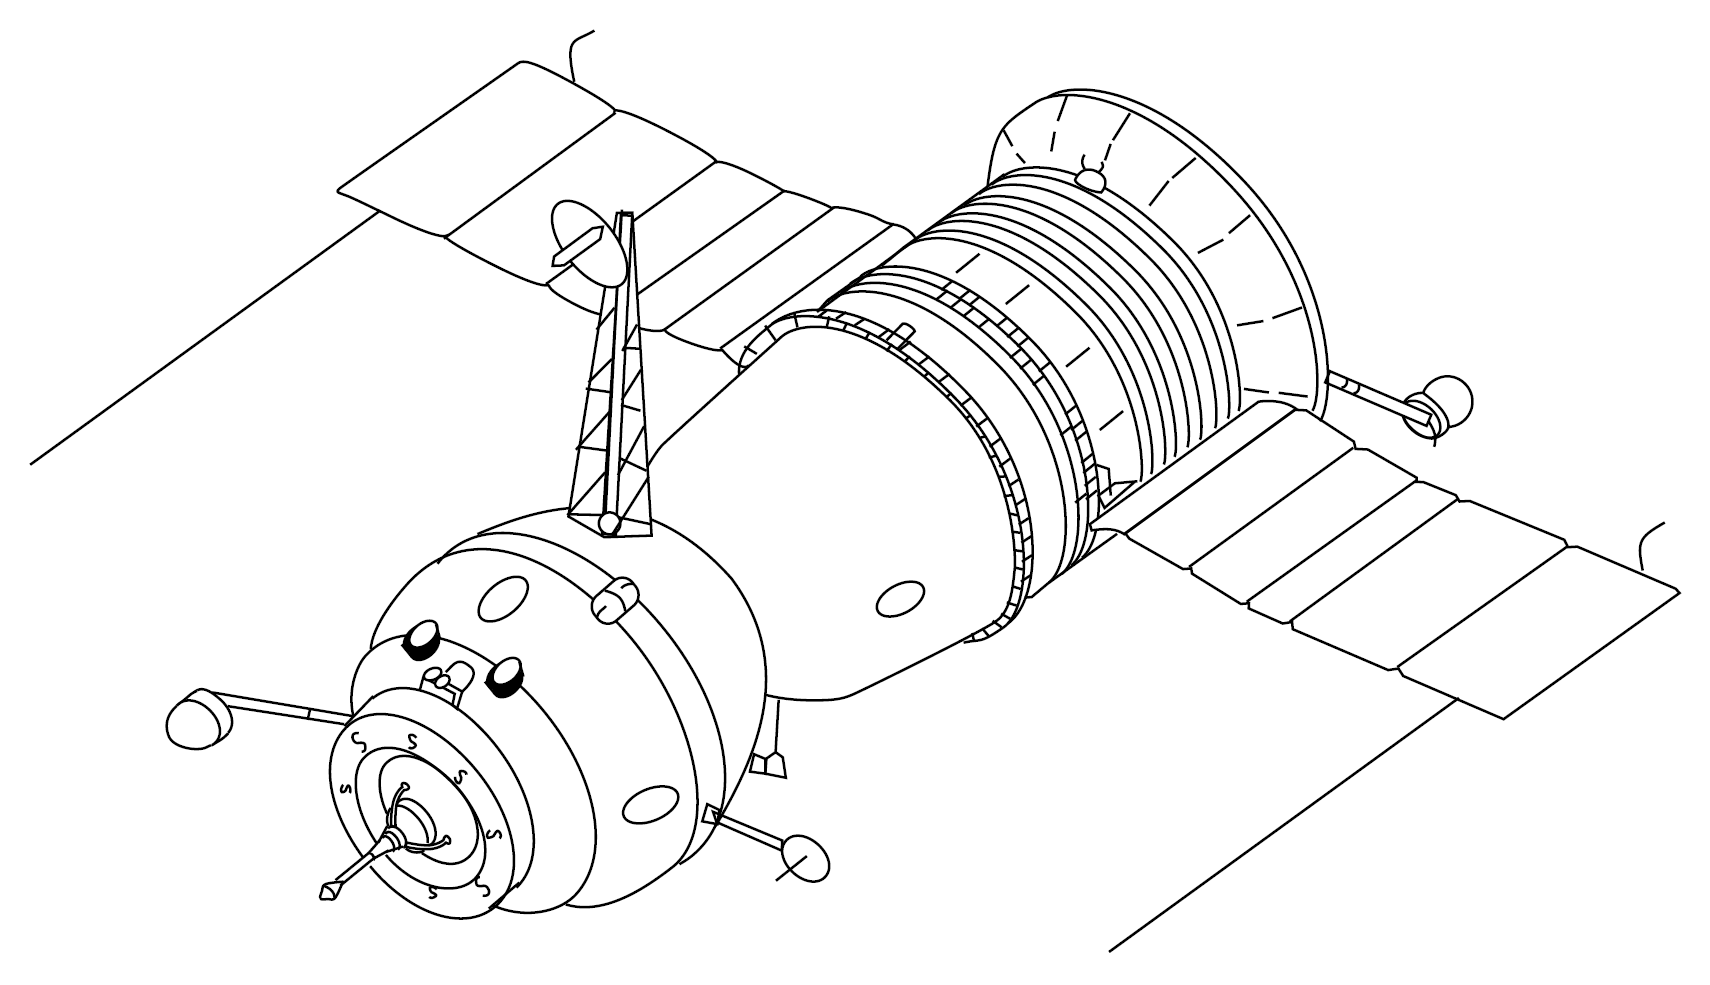 Drawing Space Probe with Wheels (page 2) - Pics about space